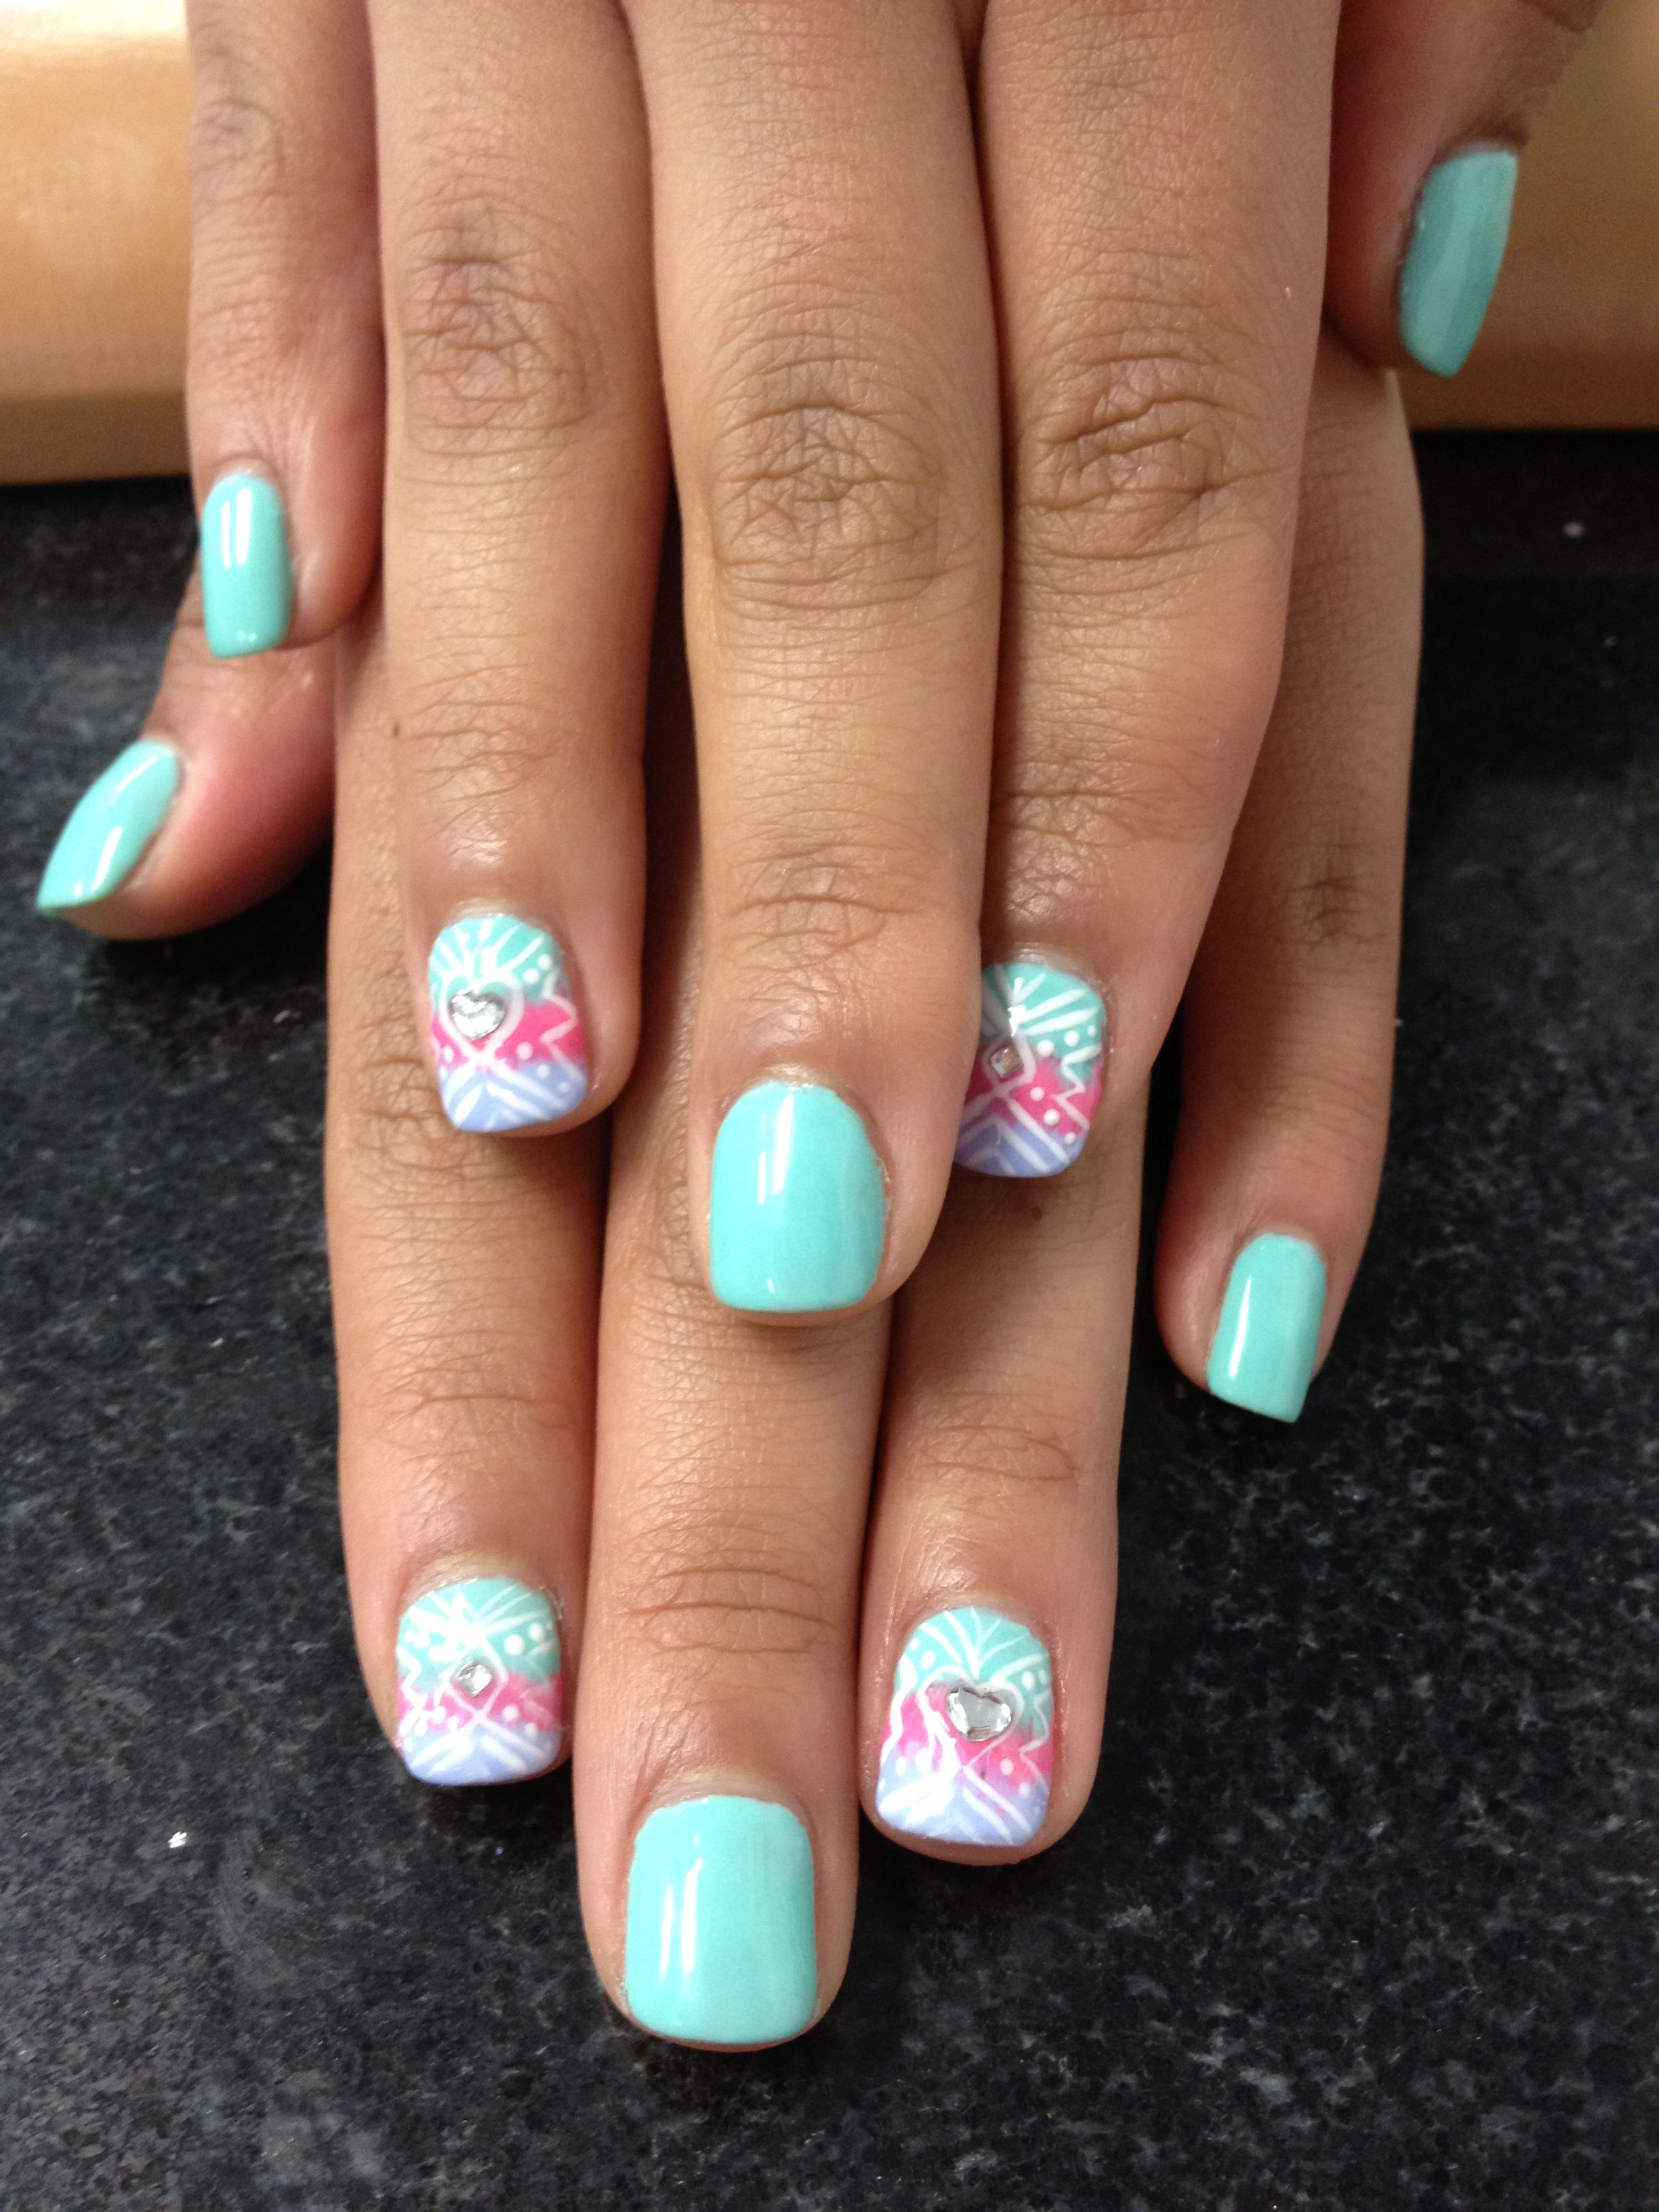 Hombre ans astec at once   My nails designs   Pinterest